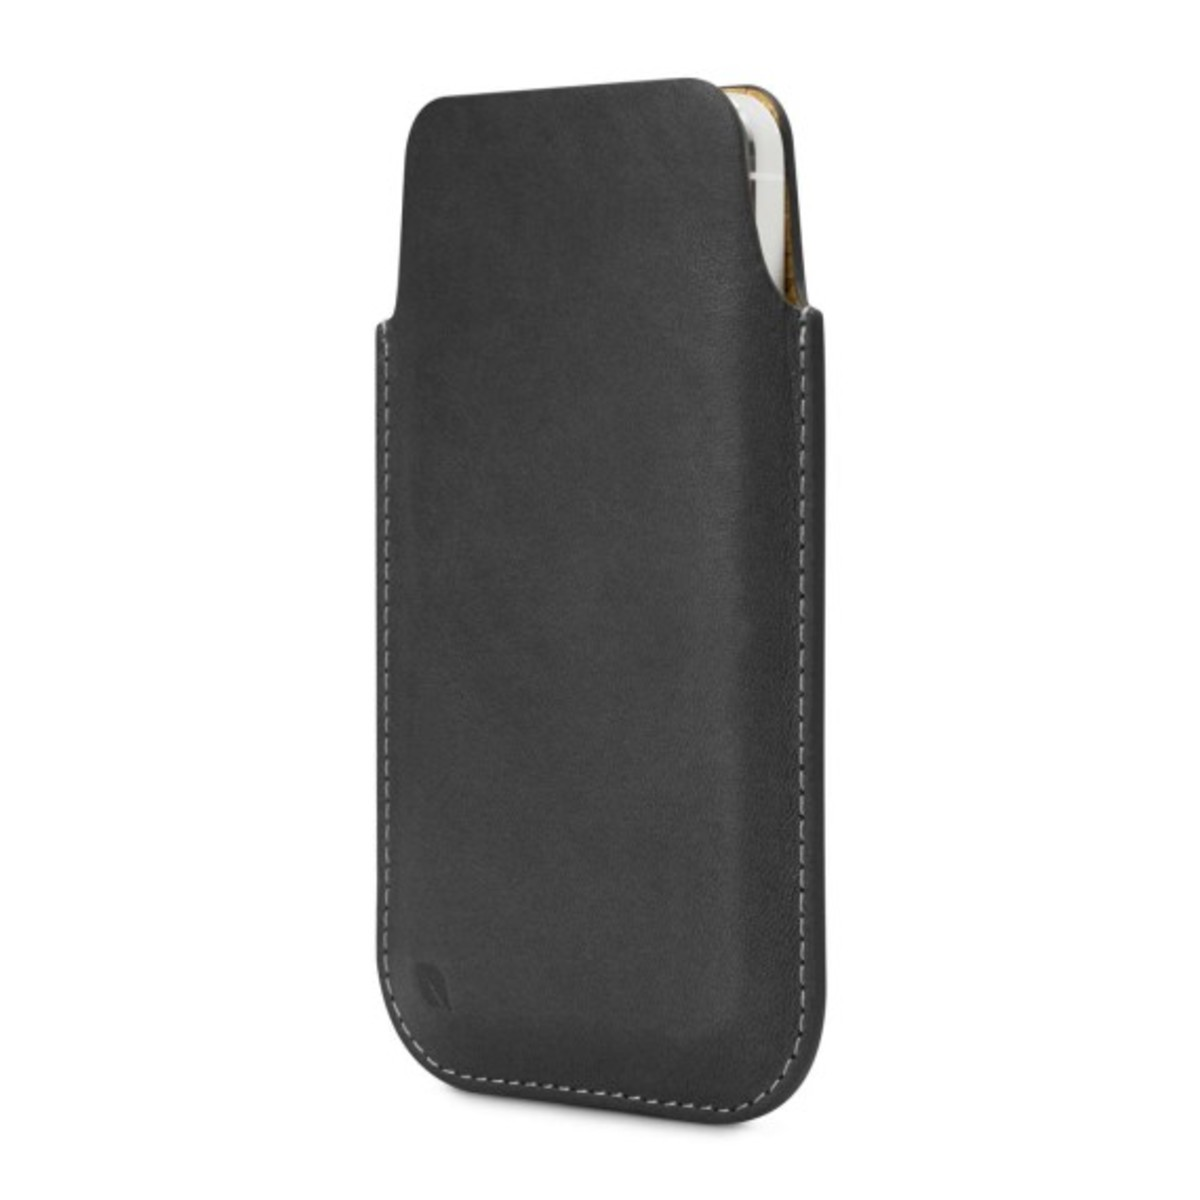 incase-iphone-5-leather-pouch-09